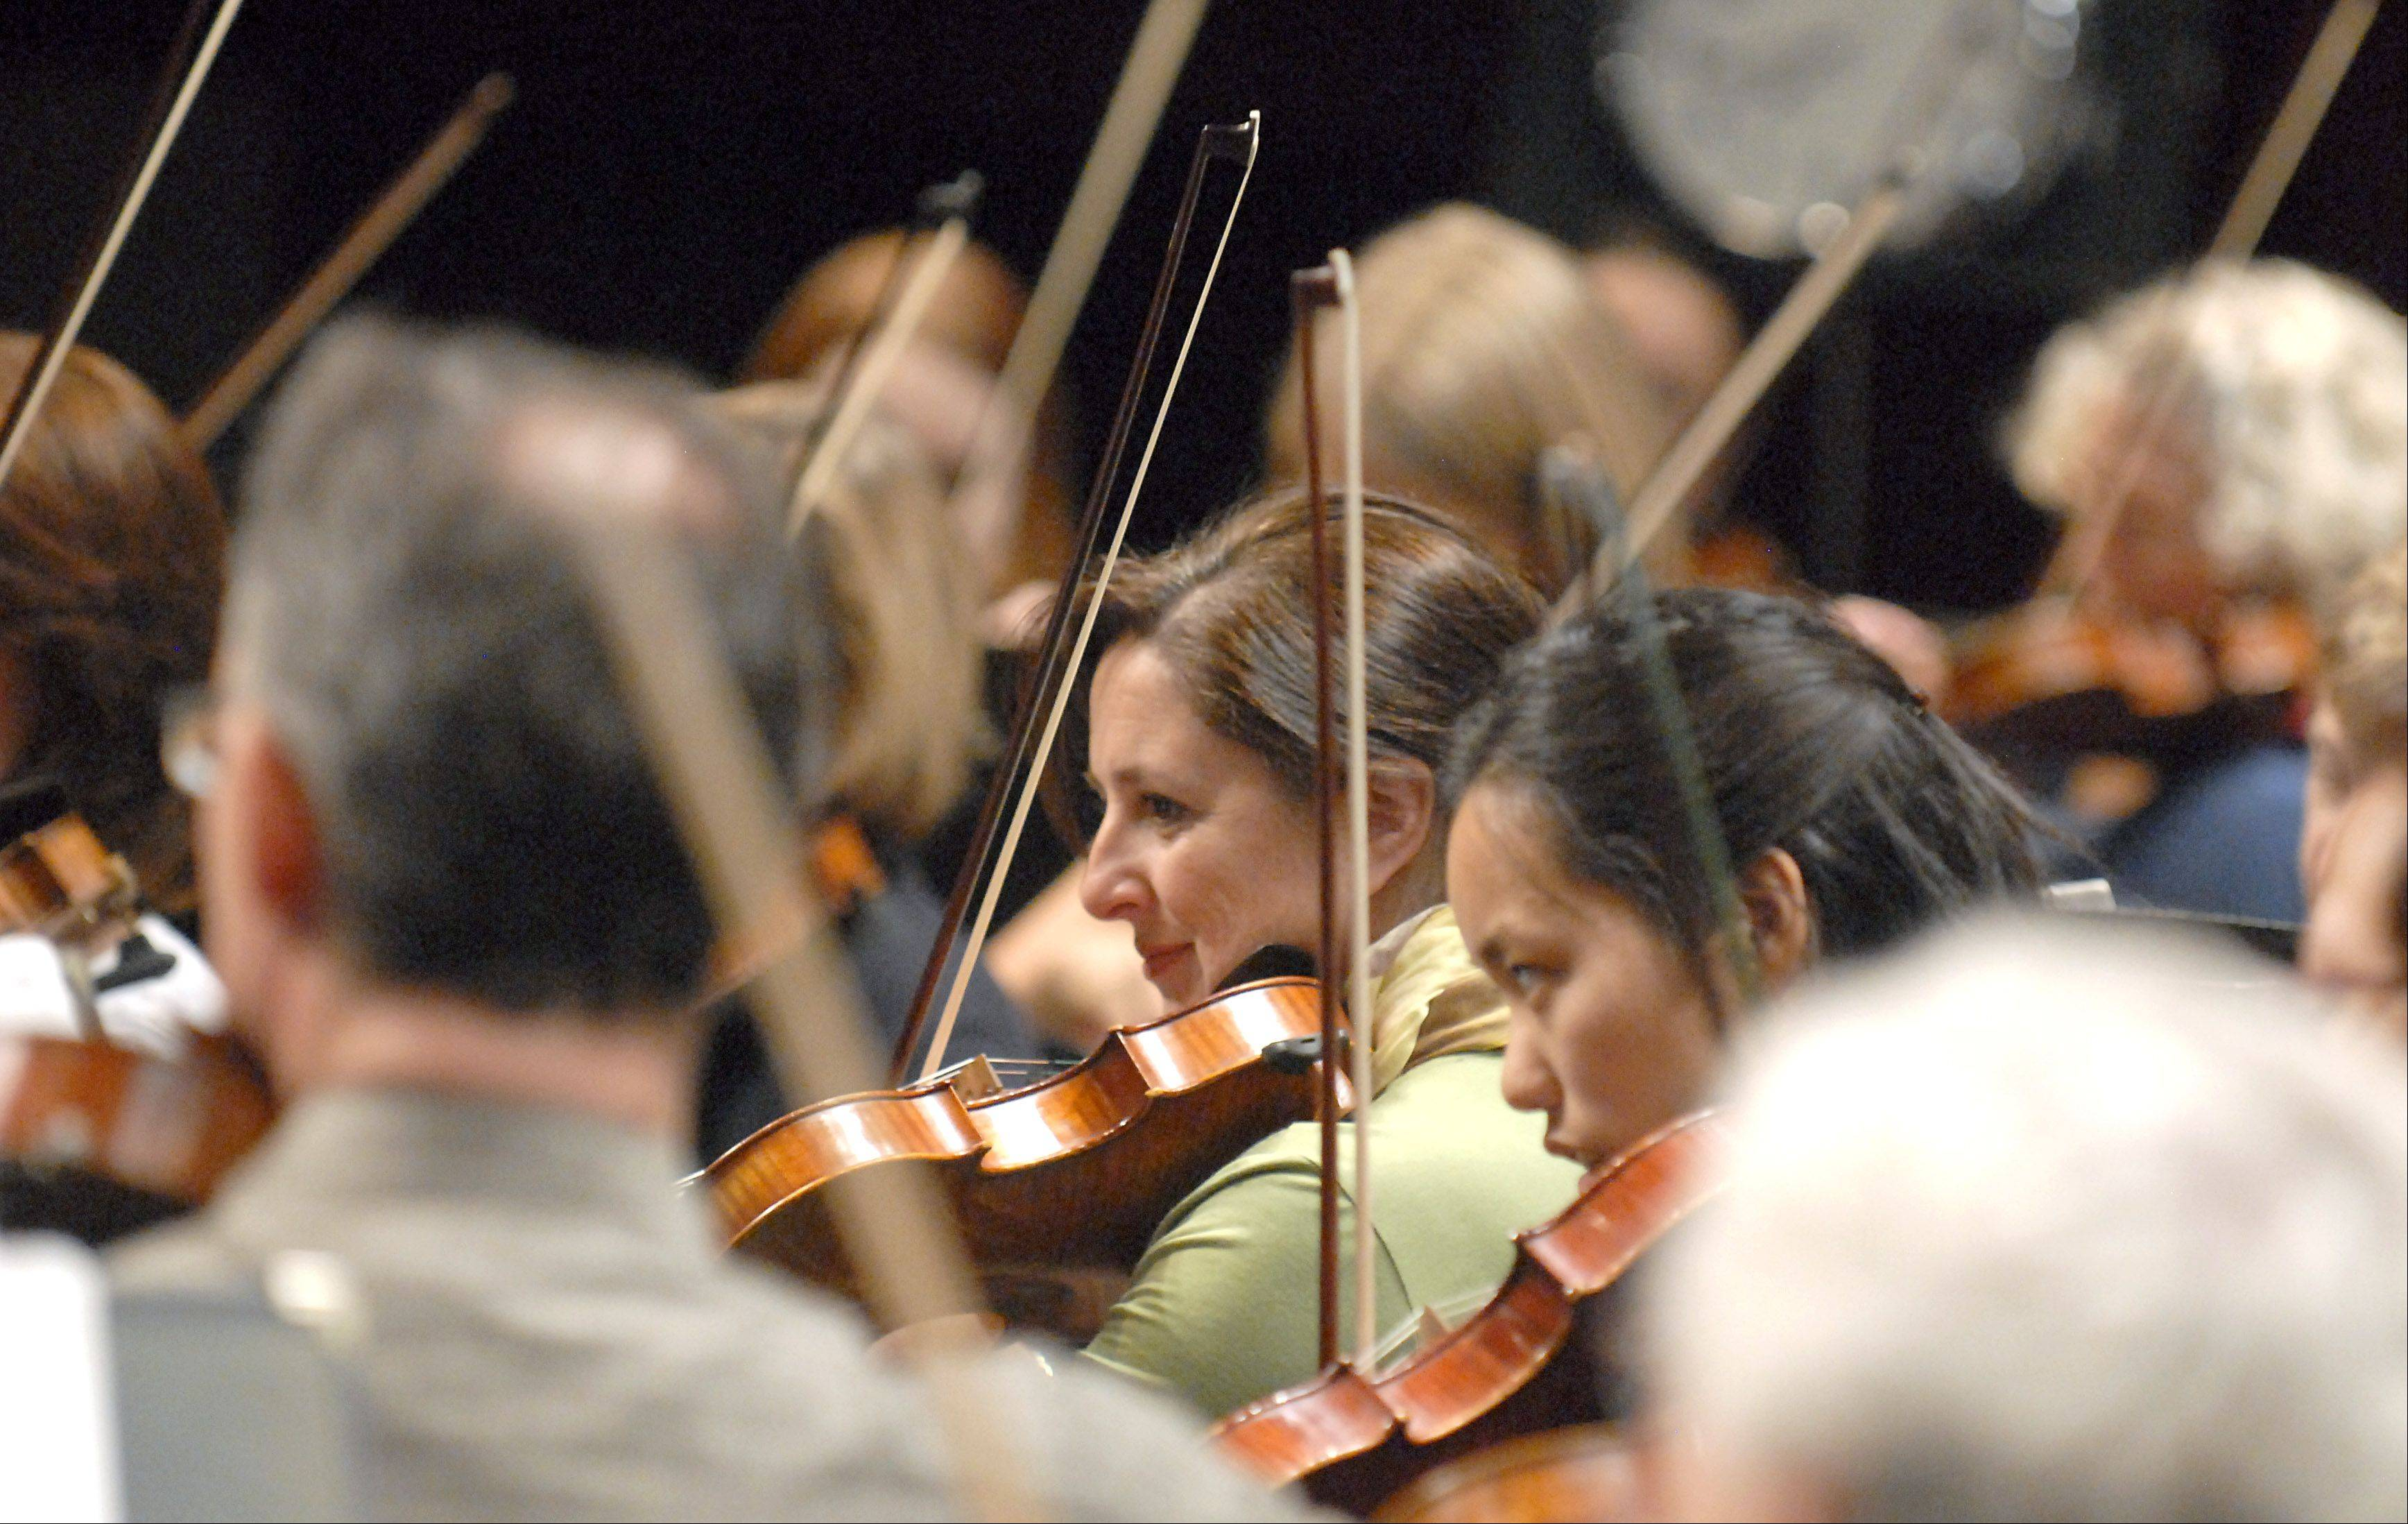 Violinists perform a piece with the Elgin Symphony Orchestra during rehearsal at the Hemmens Cultural Center in Elgin on Friday. The behind-the-scenes event was offered as a Daily Herald Subscriber Total Access event.